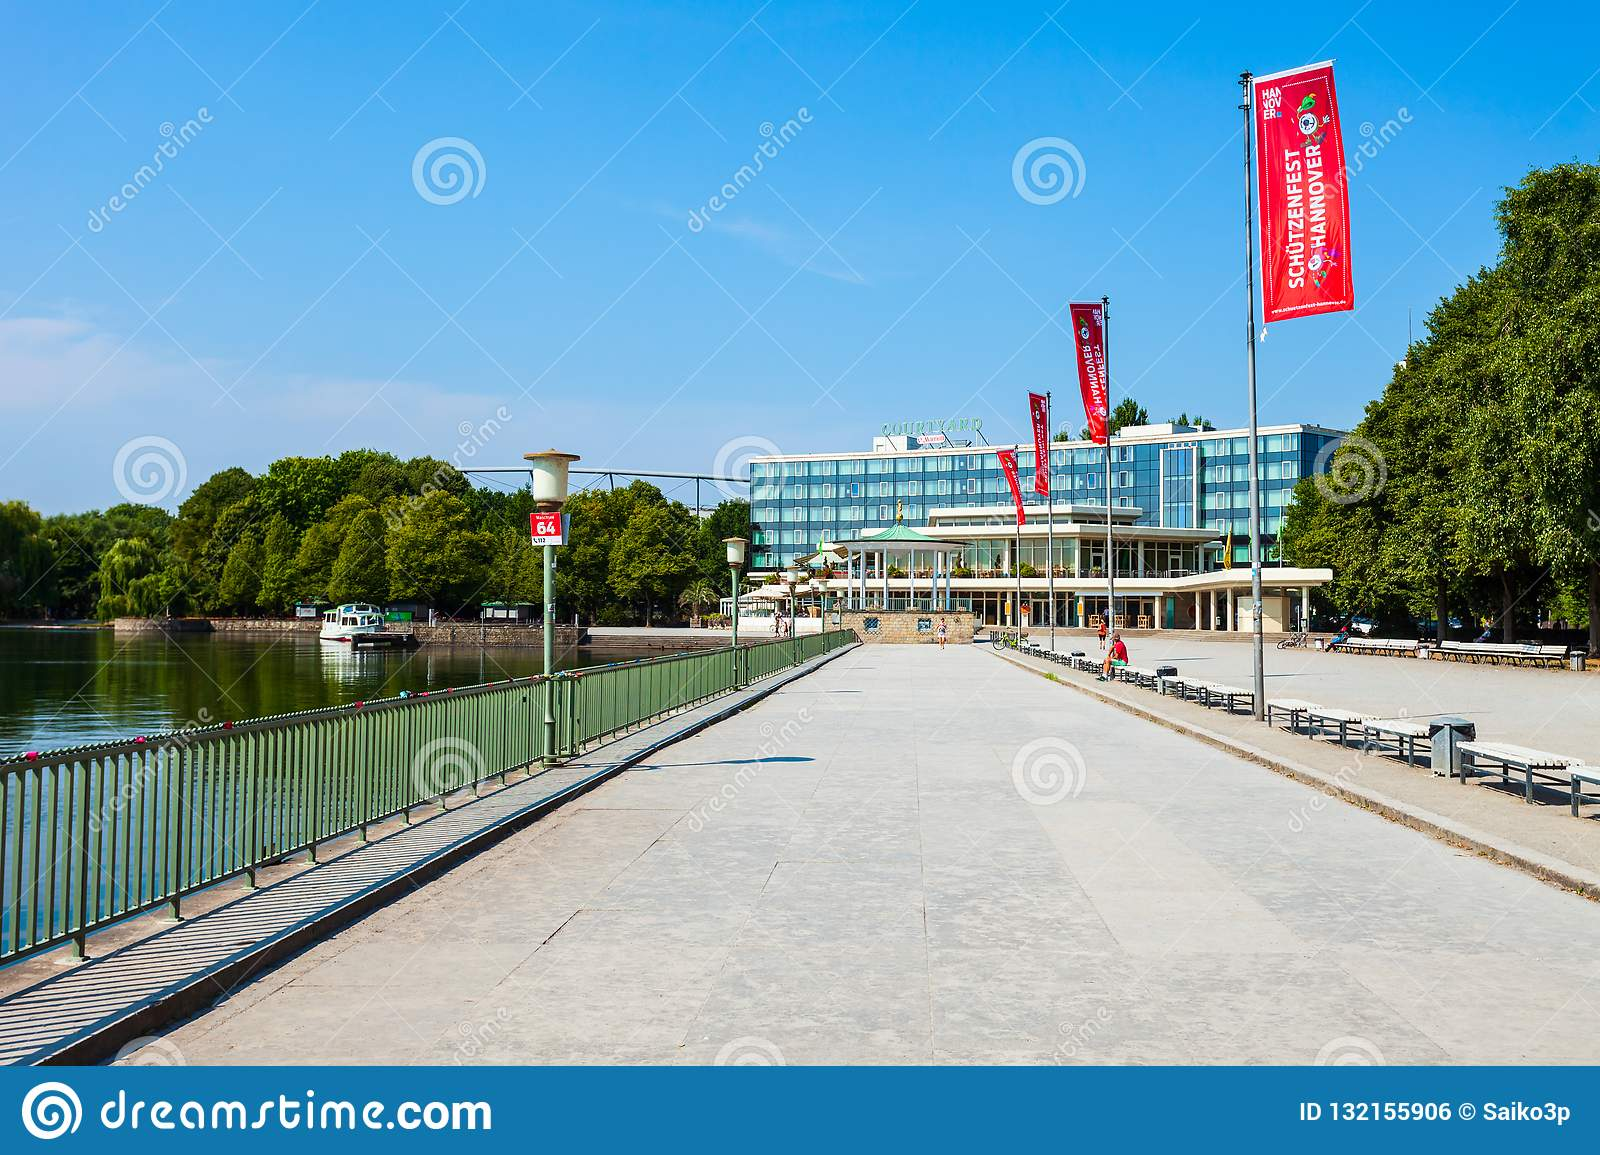 Courtyard Marriott Hannover Maschsee Hotel Editorial Photo ...